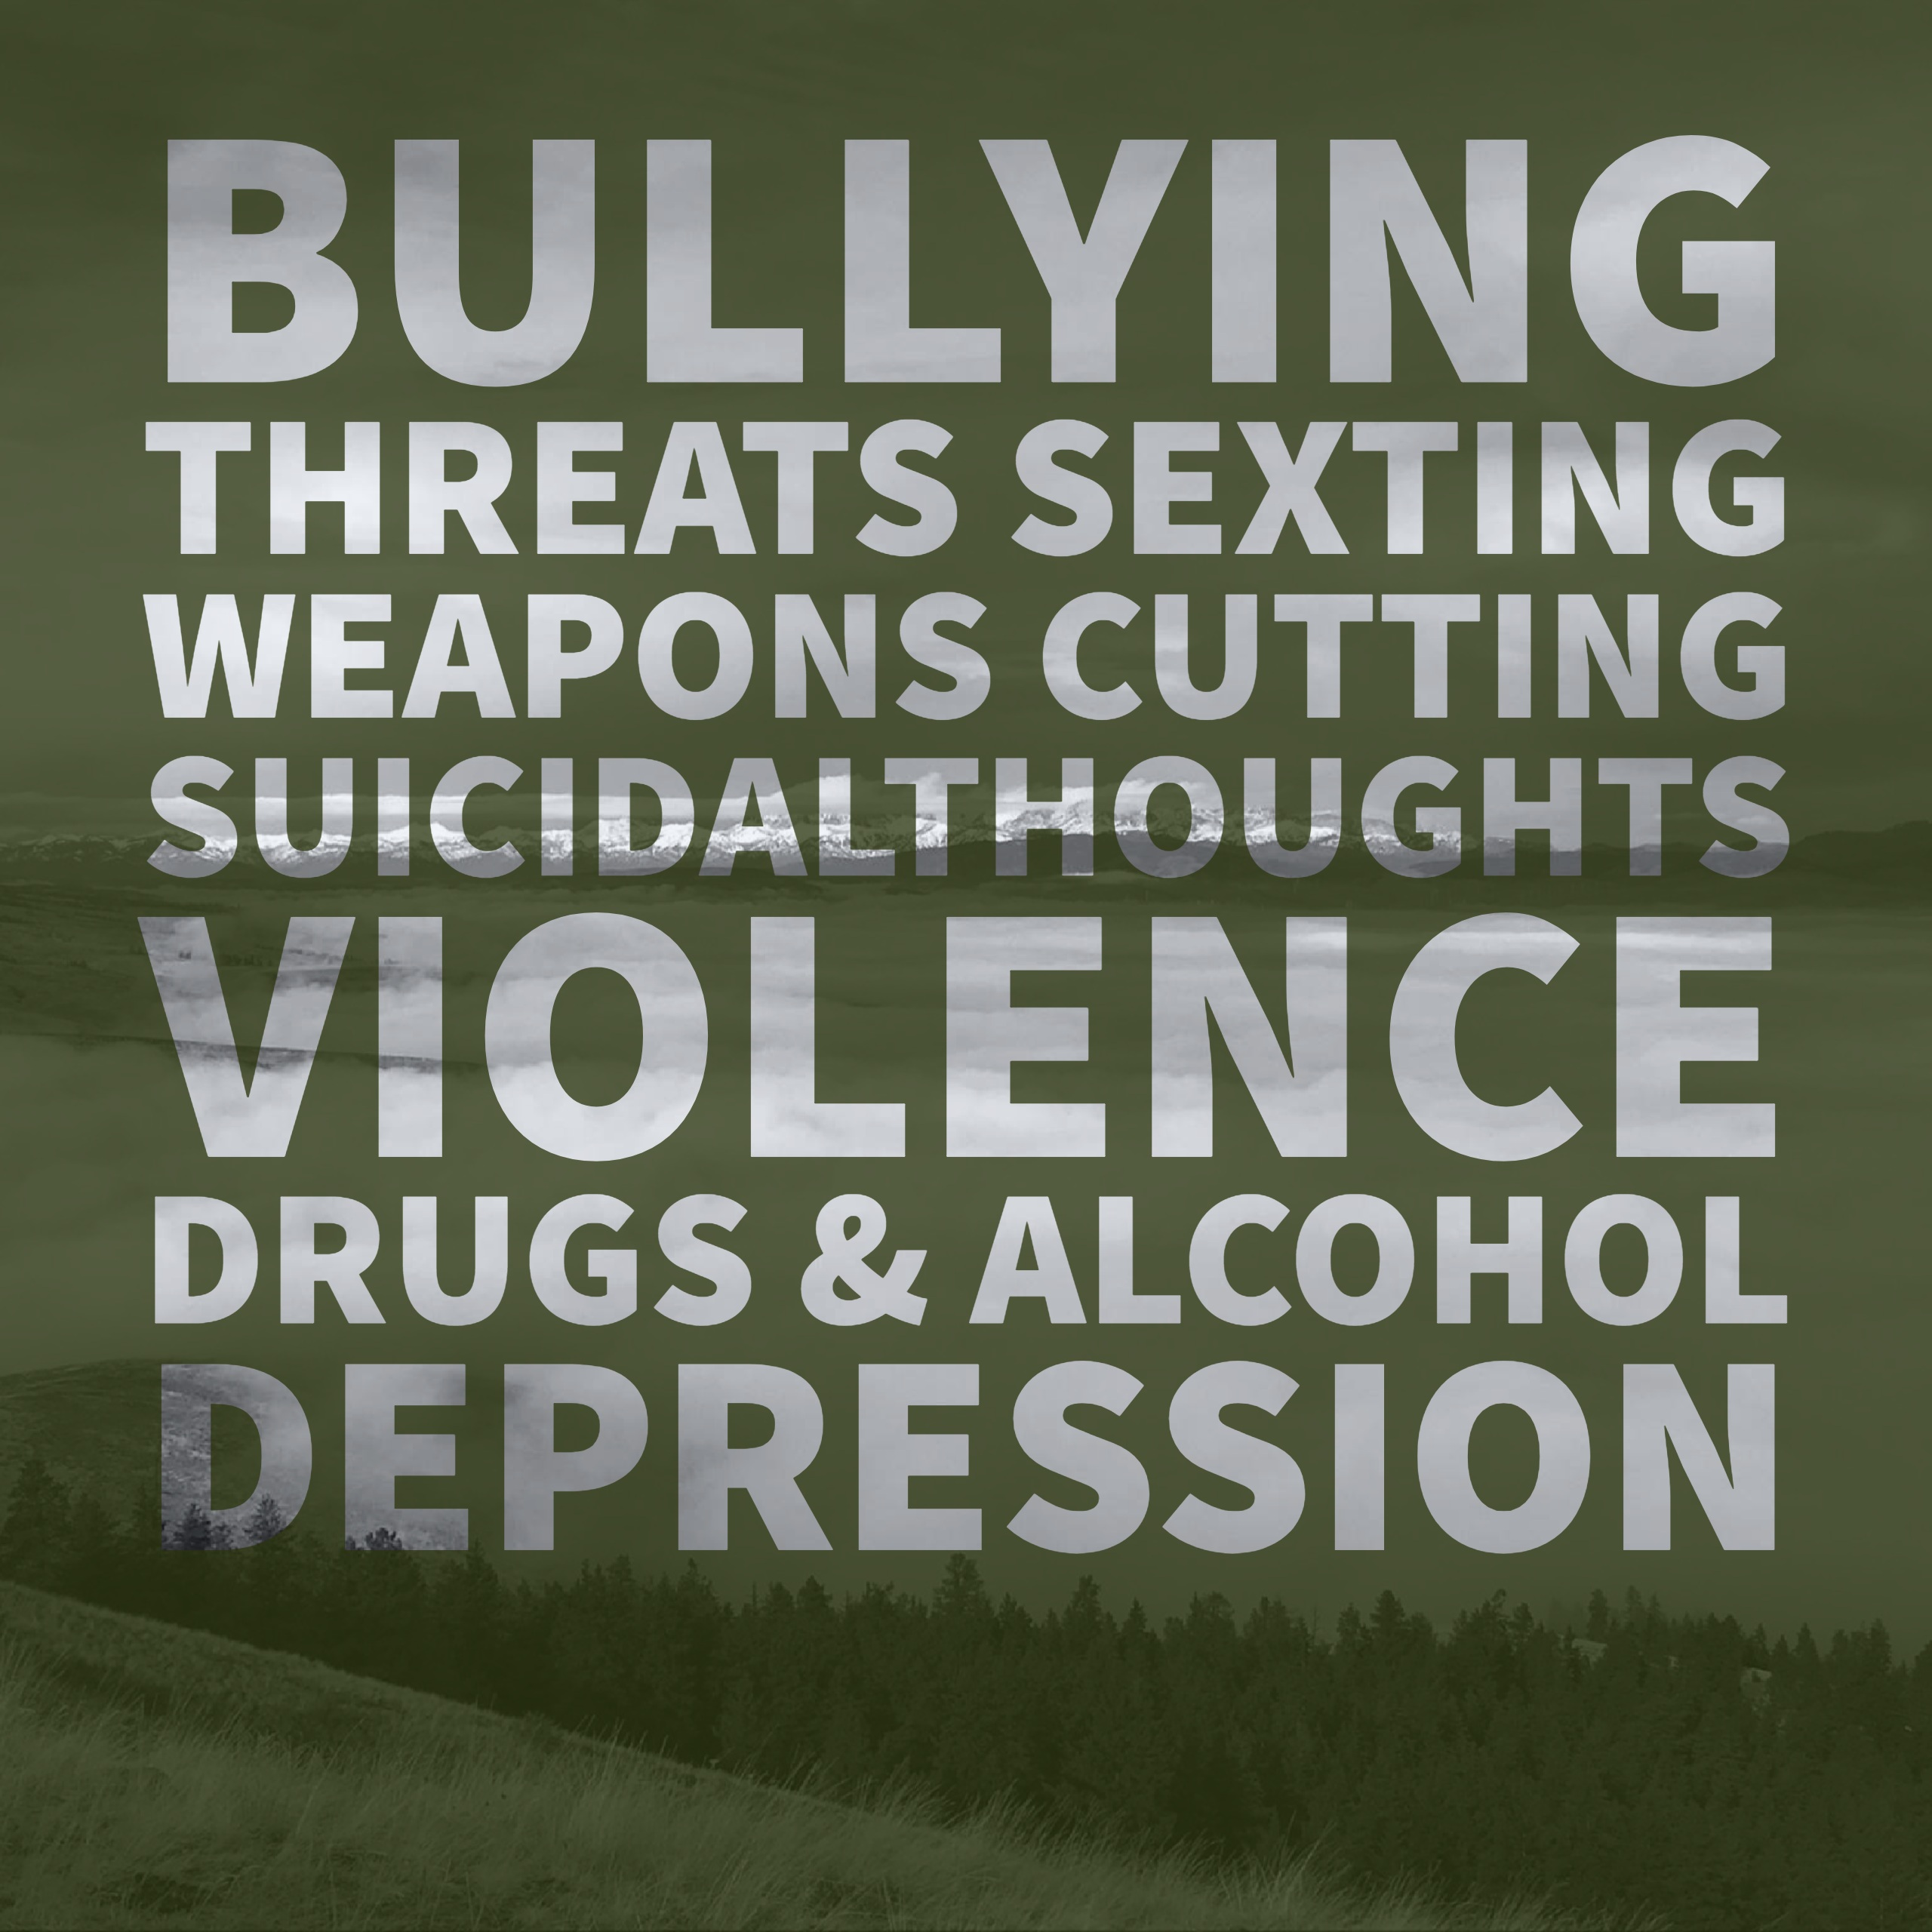 Bullying, threats ad violence graphic